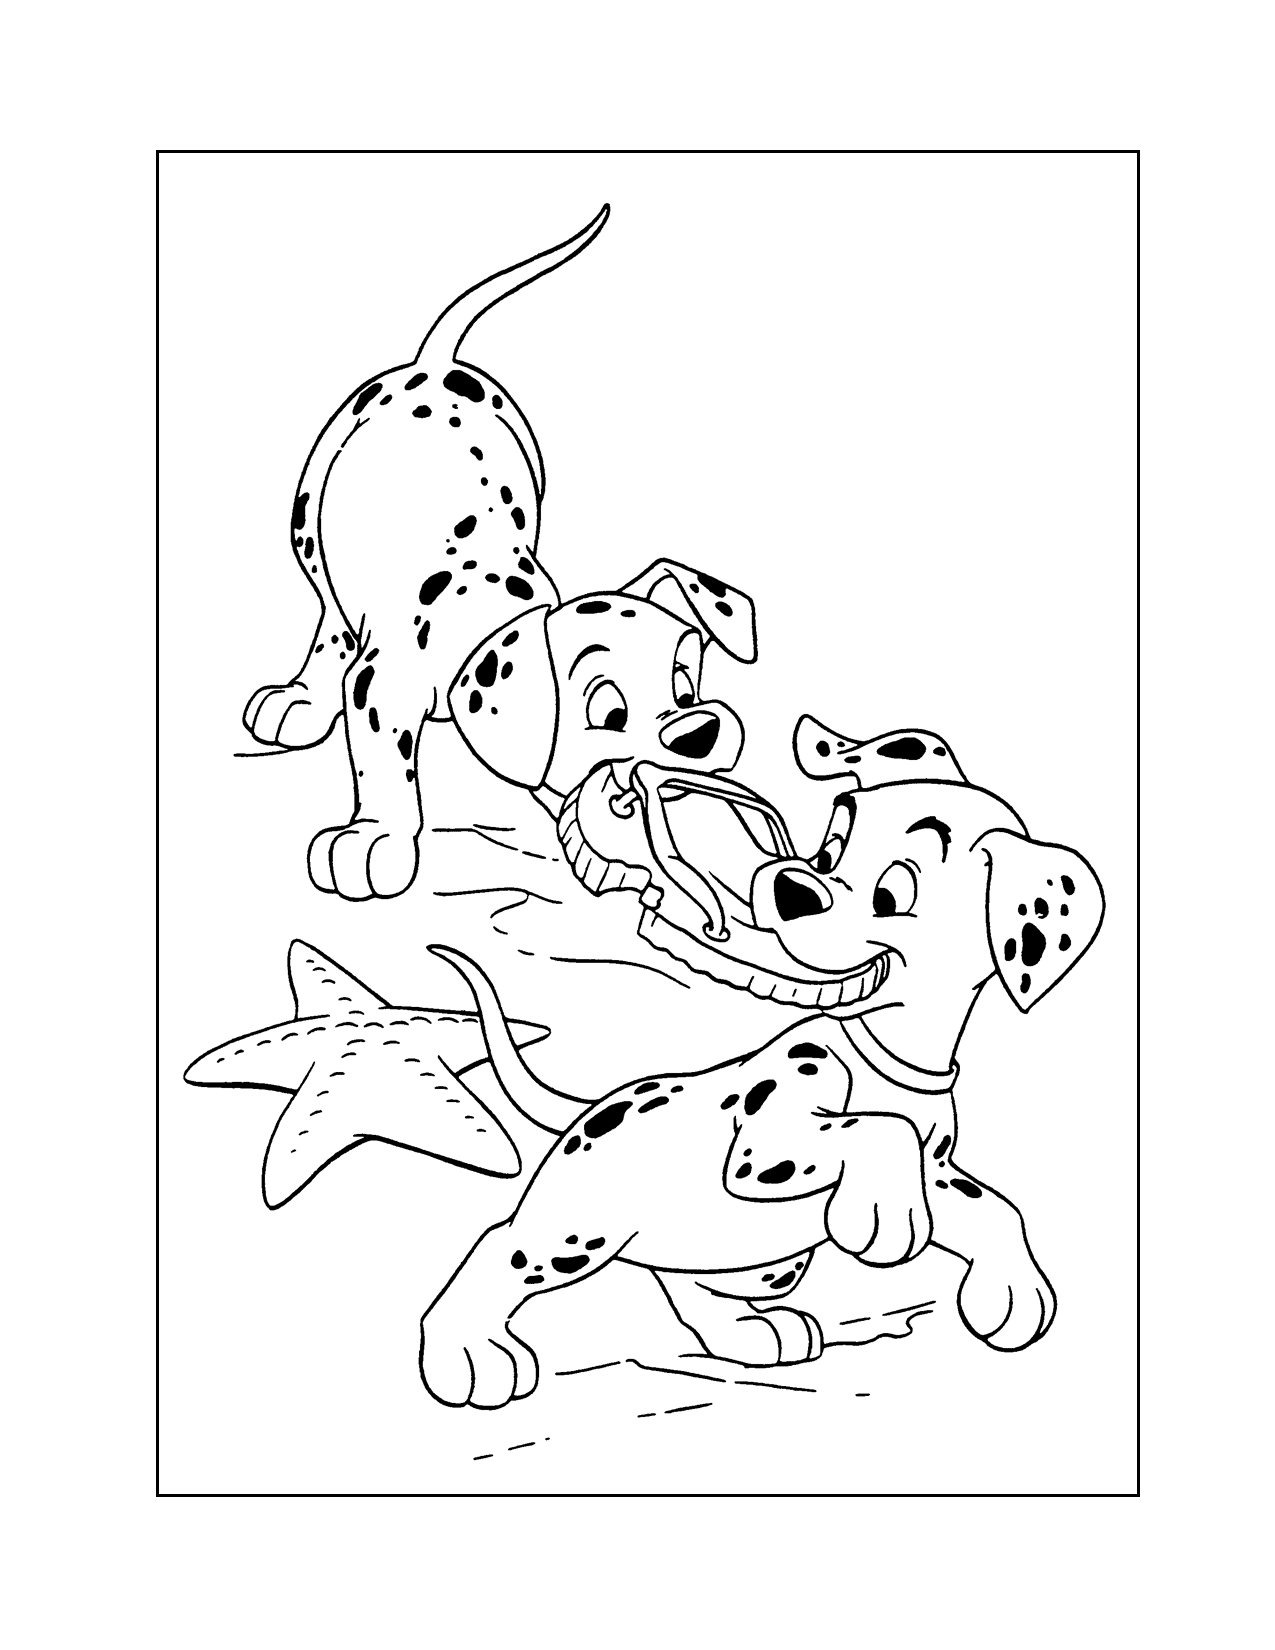 Dalmatian Puppies Eating Shoe Coloring Page